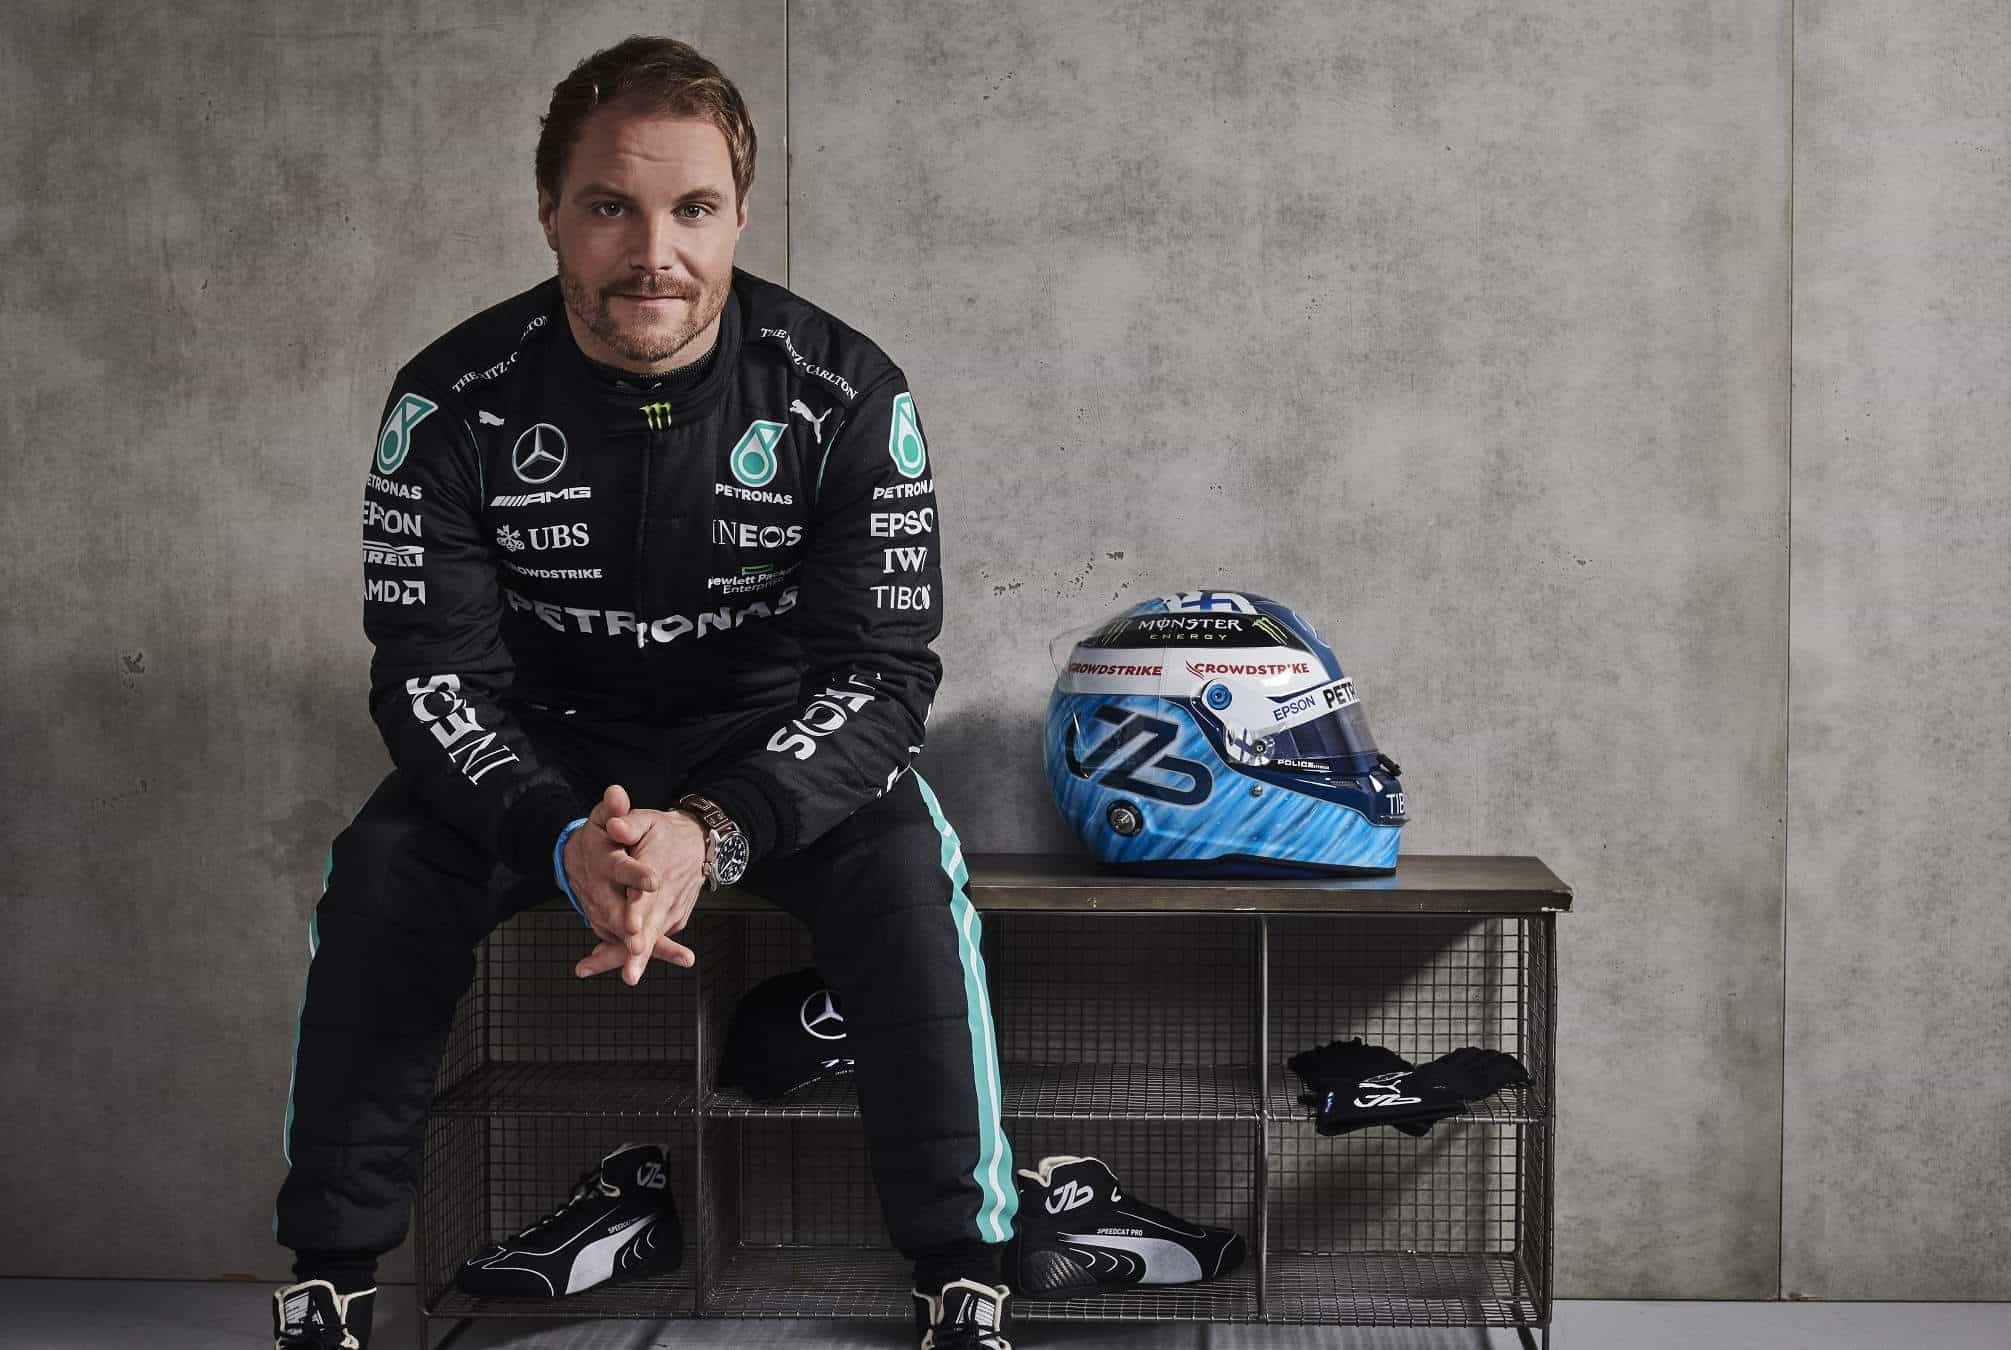 2021 Mercedes F1 W12 launch Bottas studio Photo Mercedes AMG Petronas Daimler